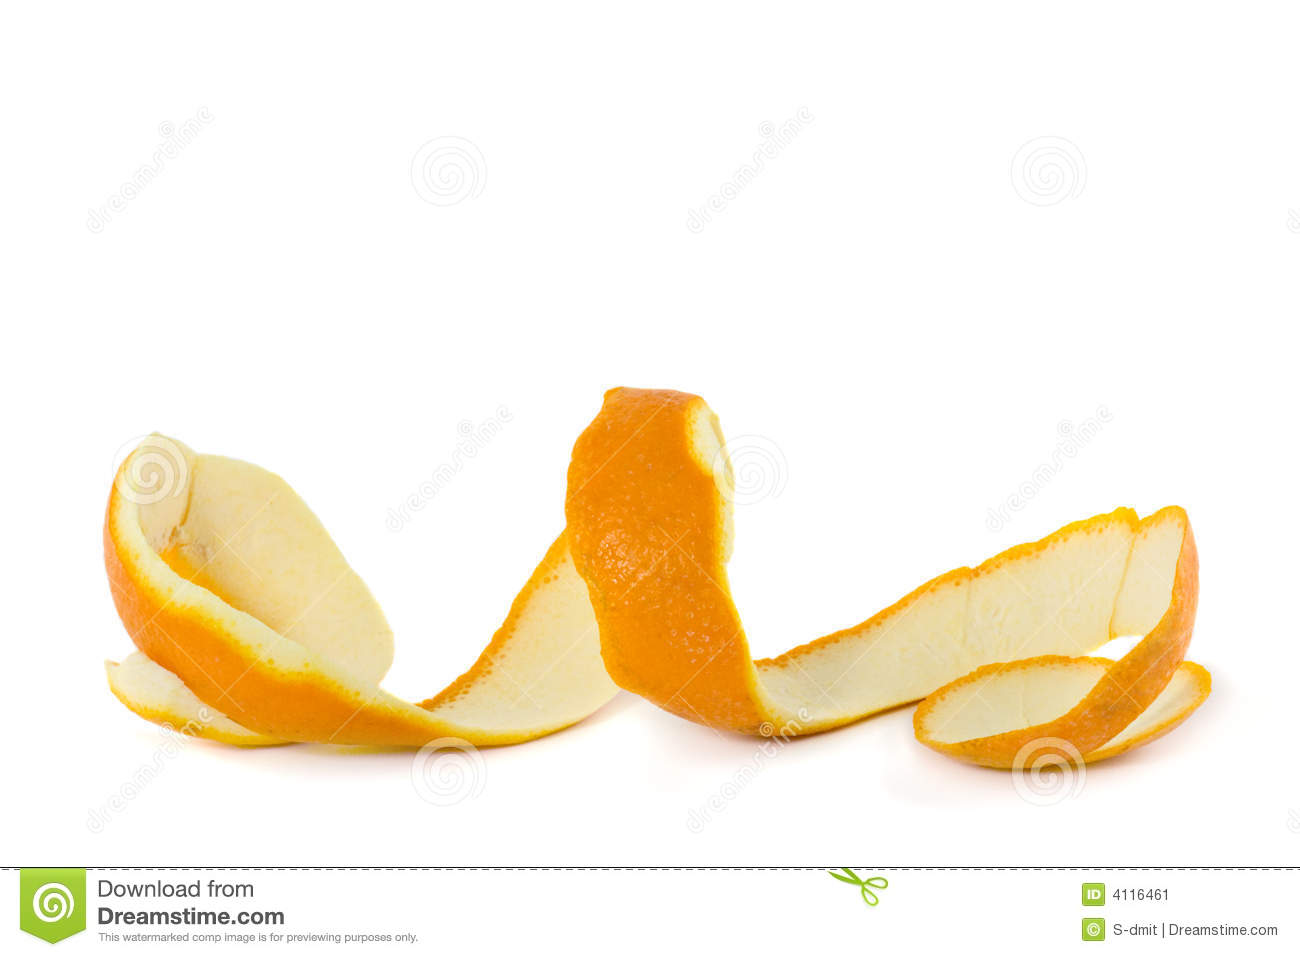 Peel of an orange